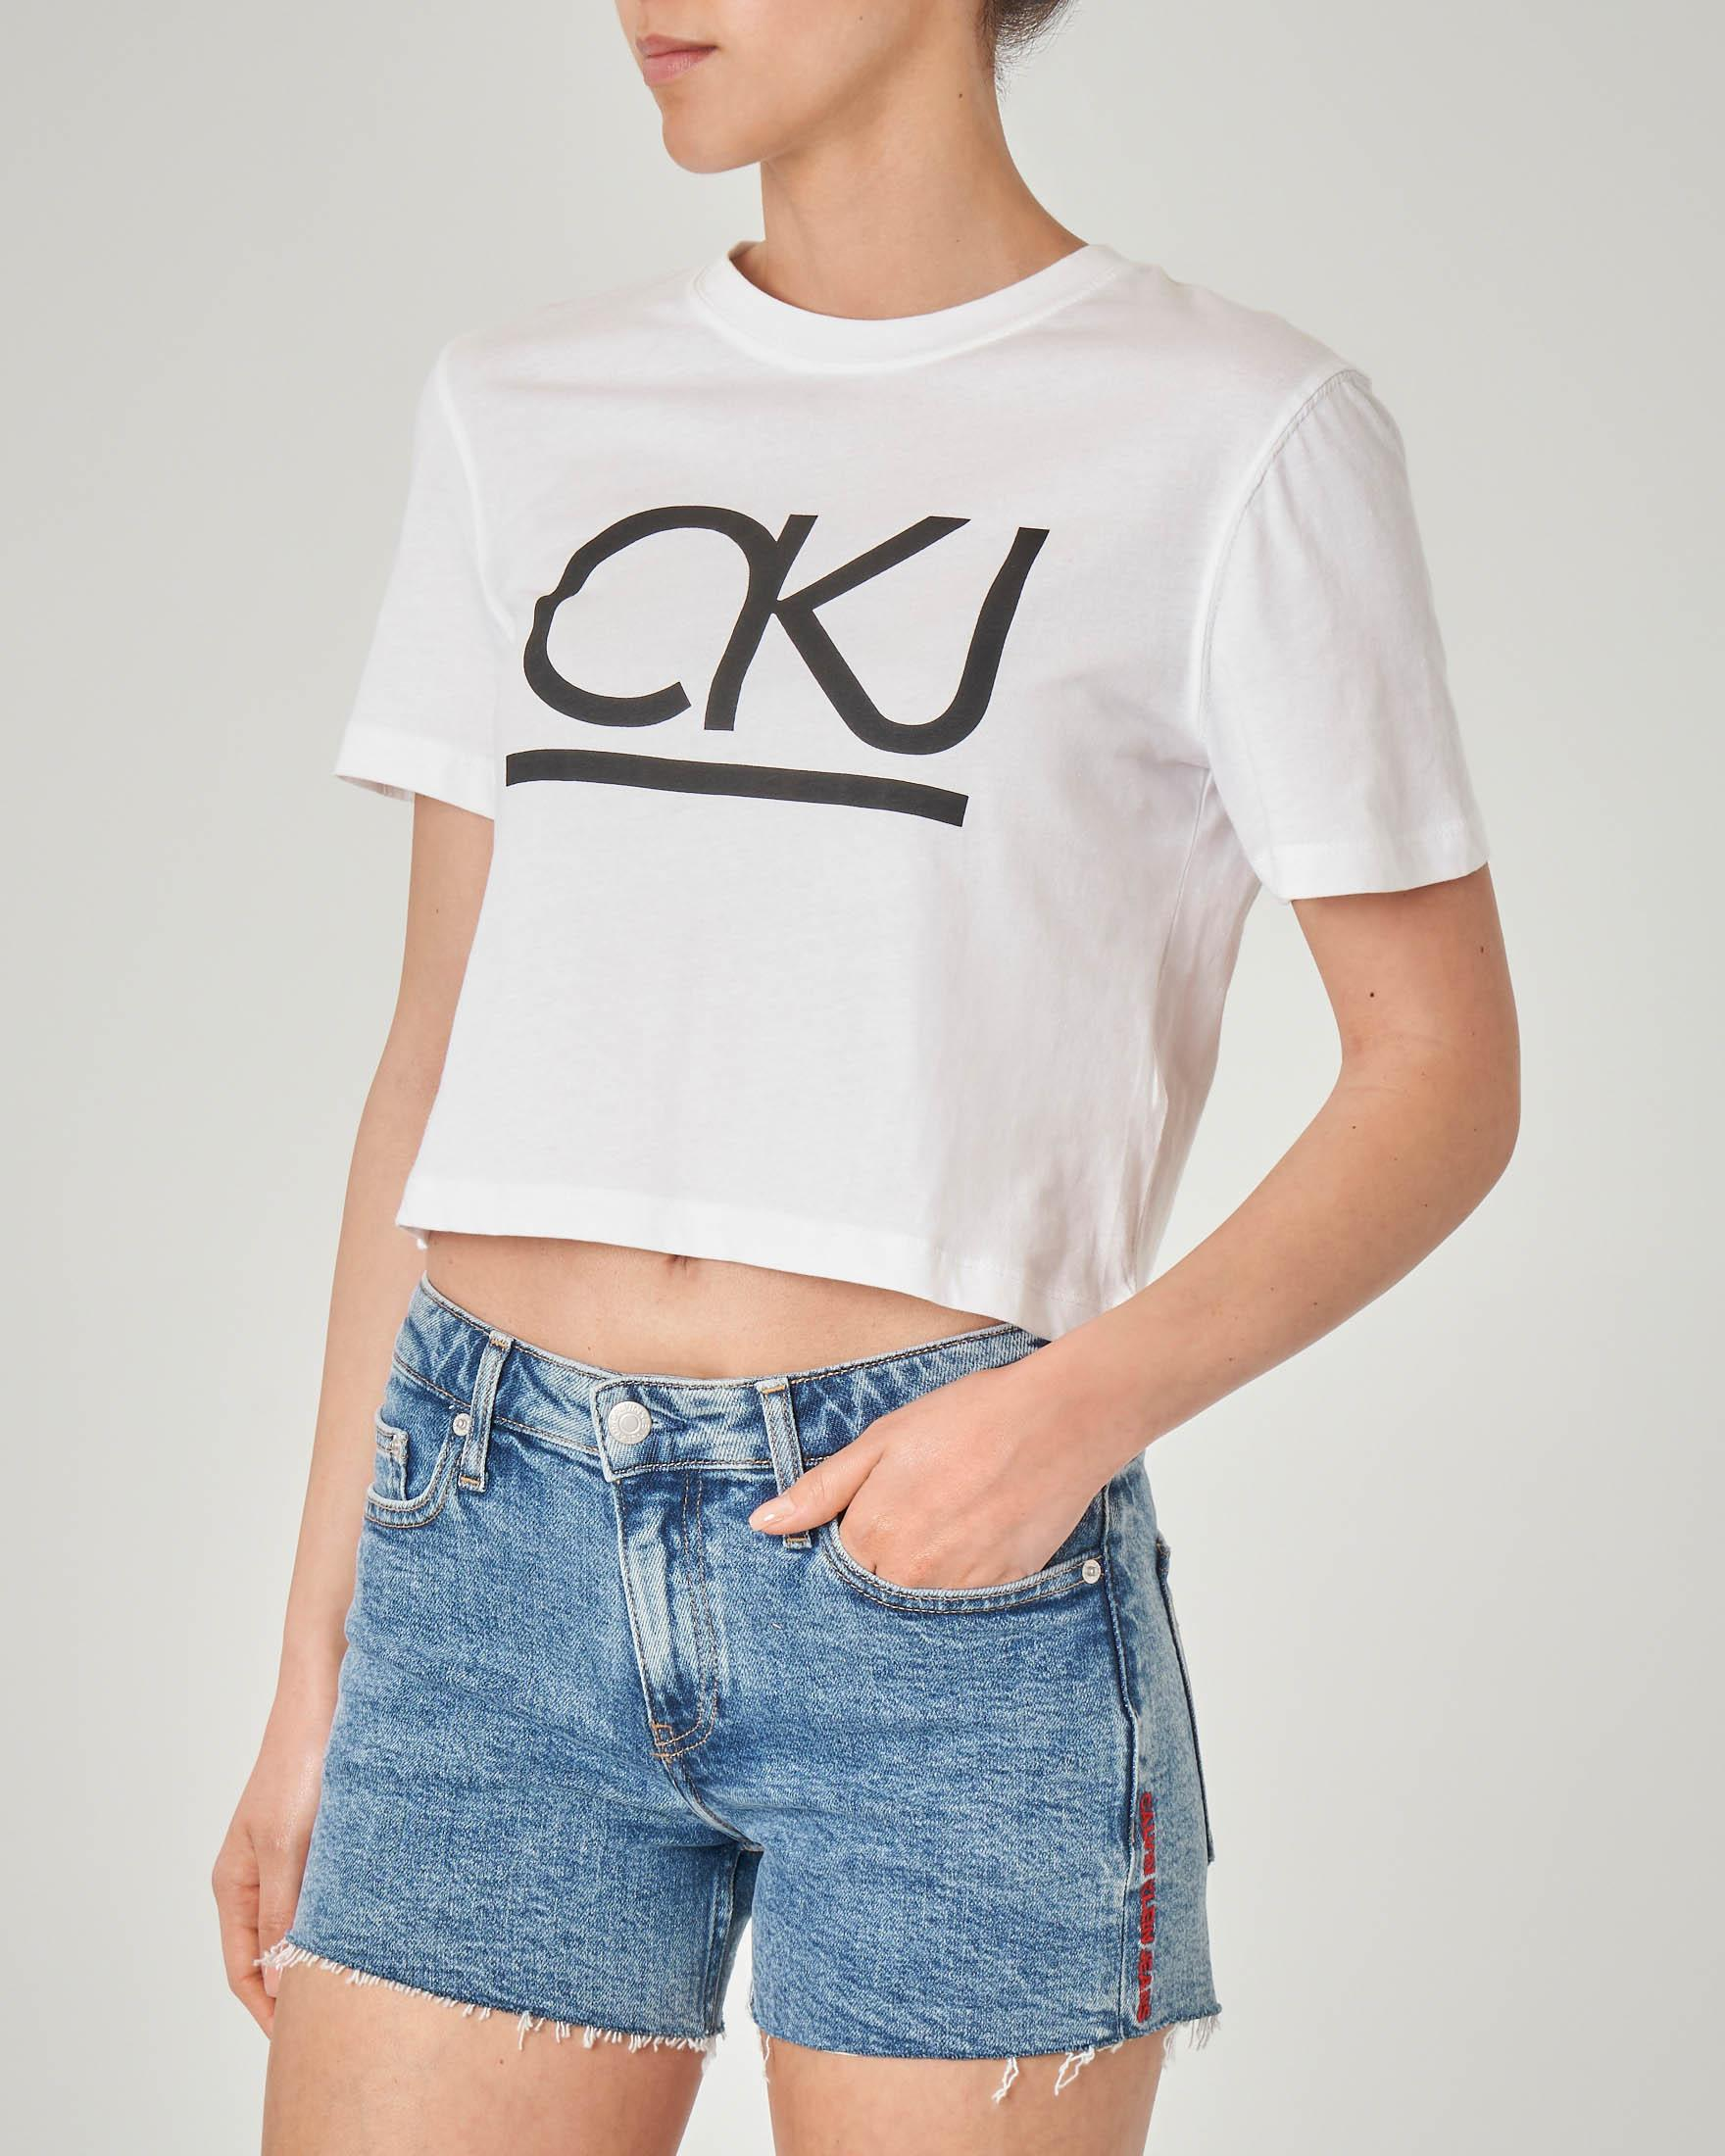 T-shirt cropped in cotone organico bianca cropped con logo nero